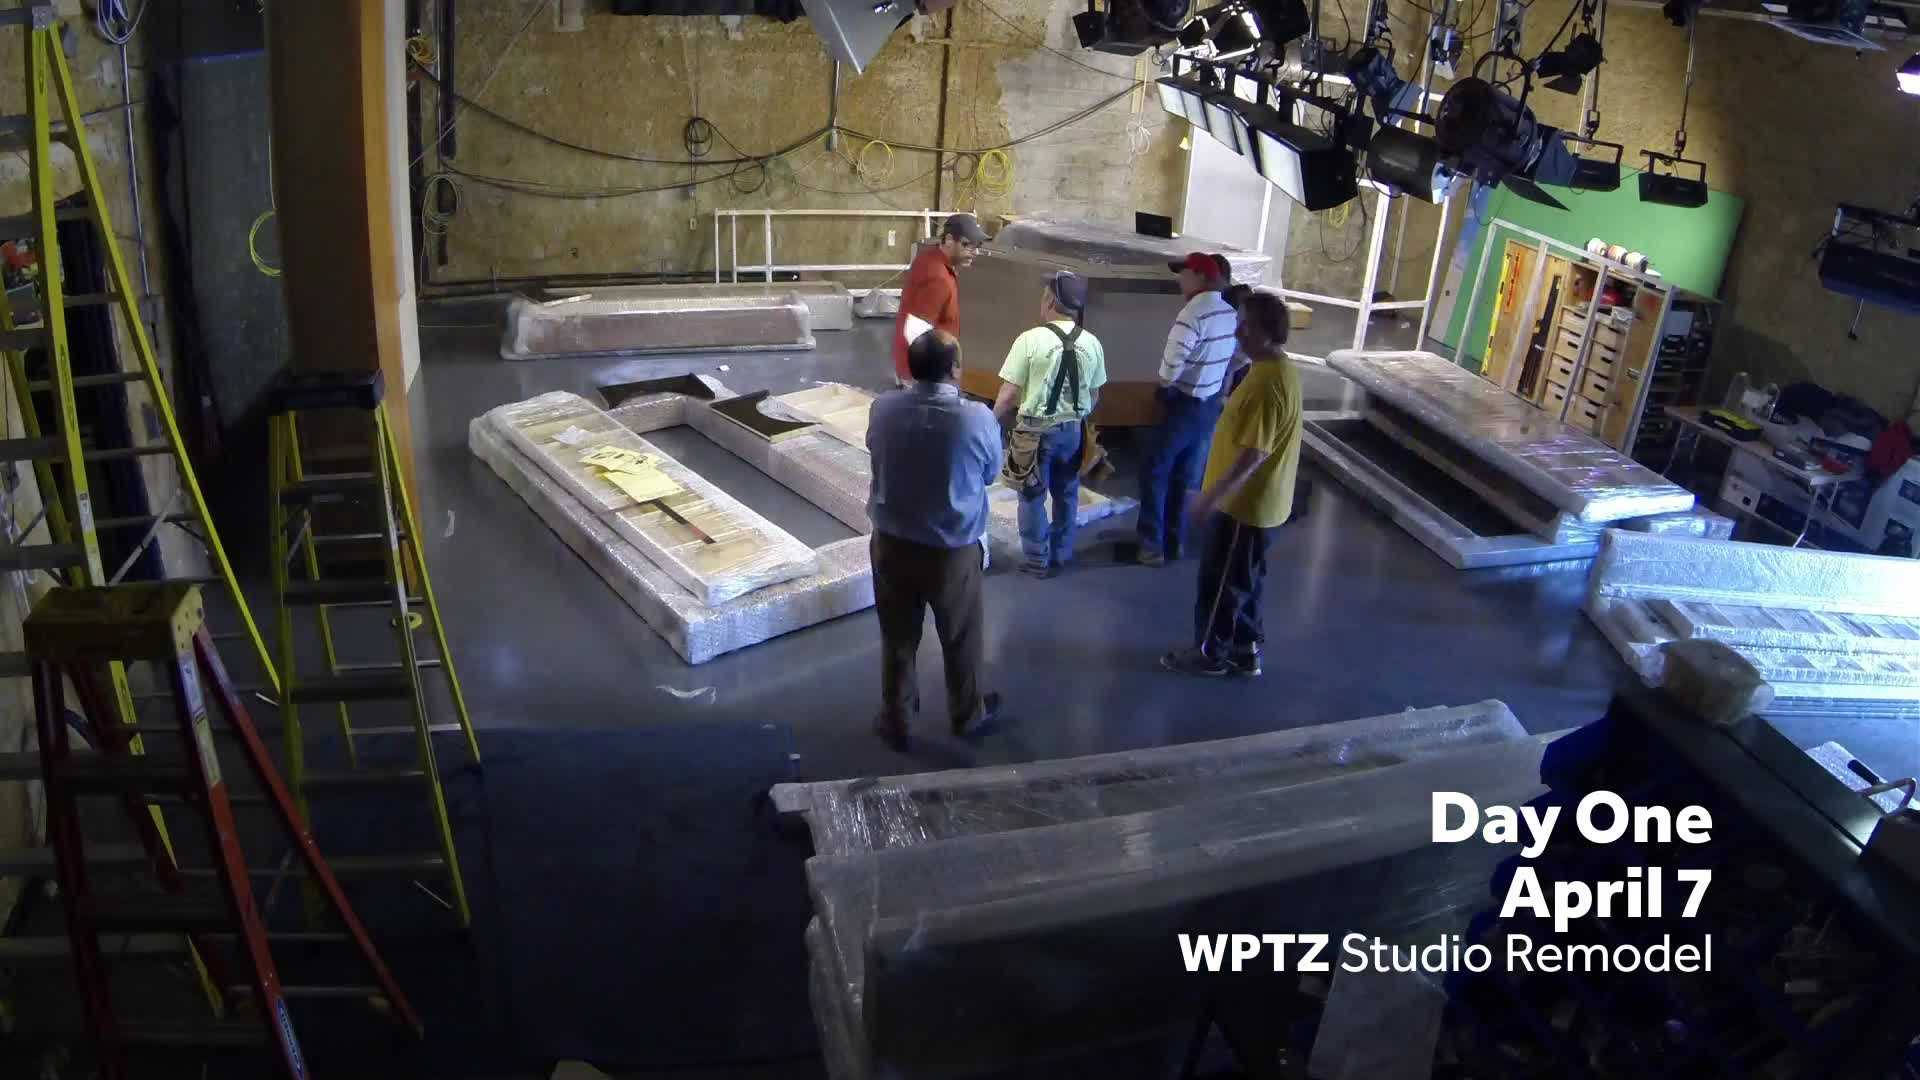 Day one of WPTZ's studio renovation.